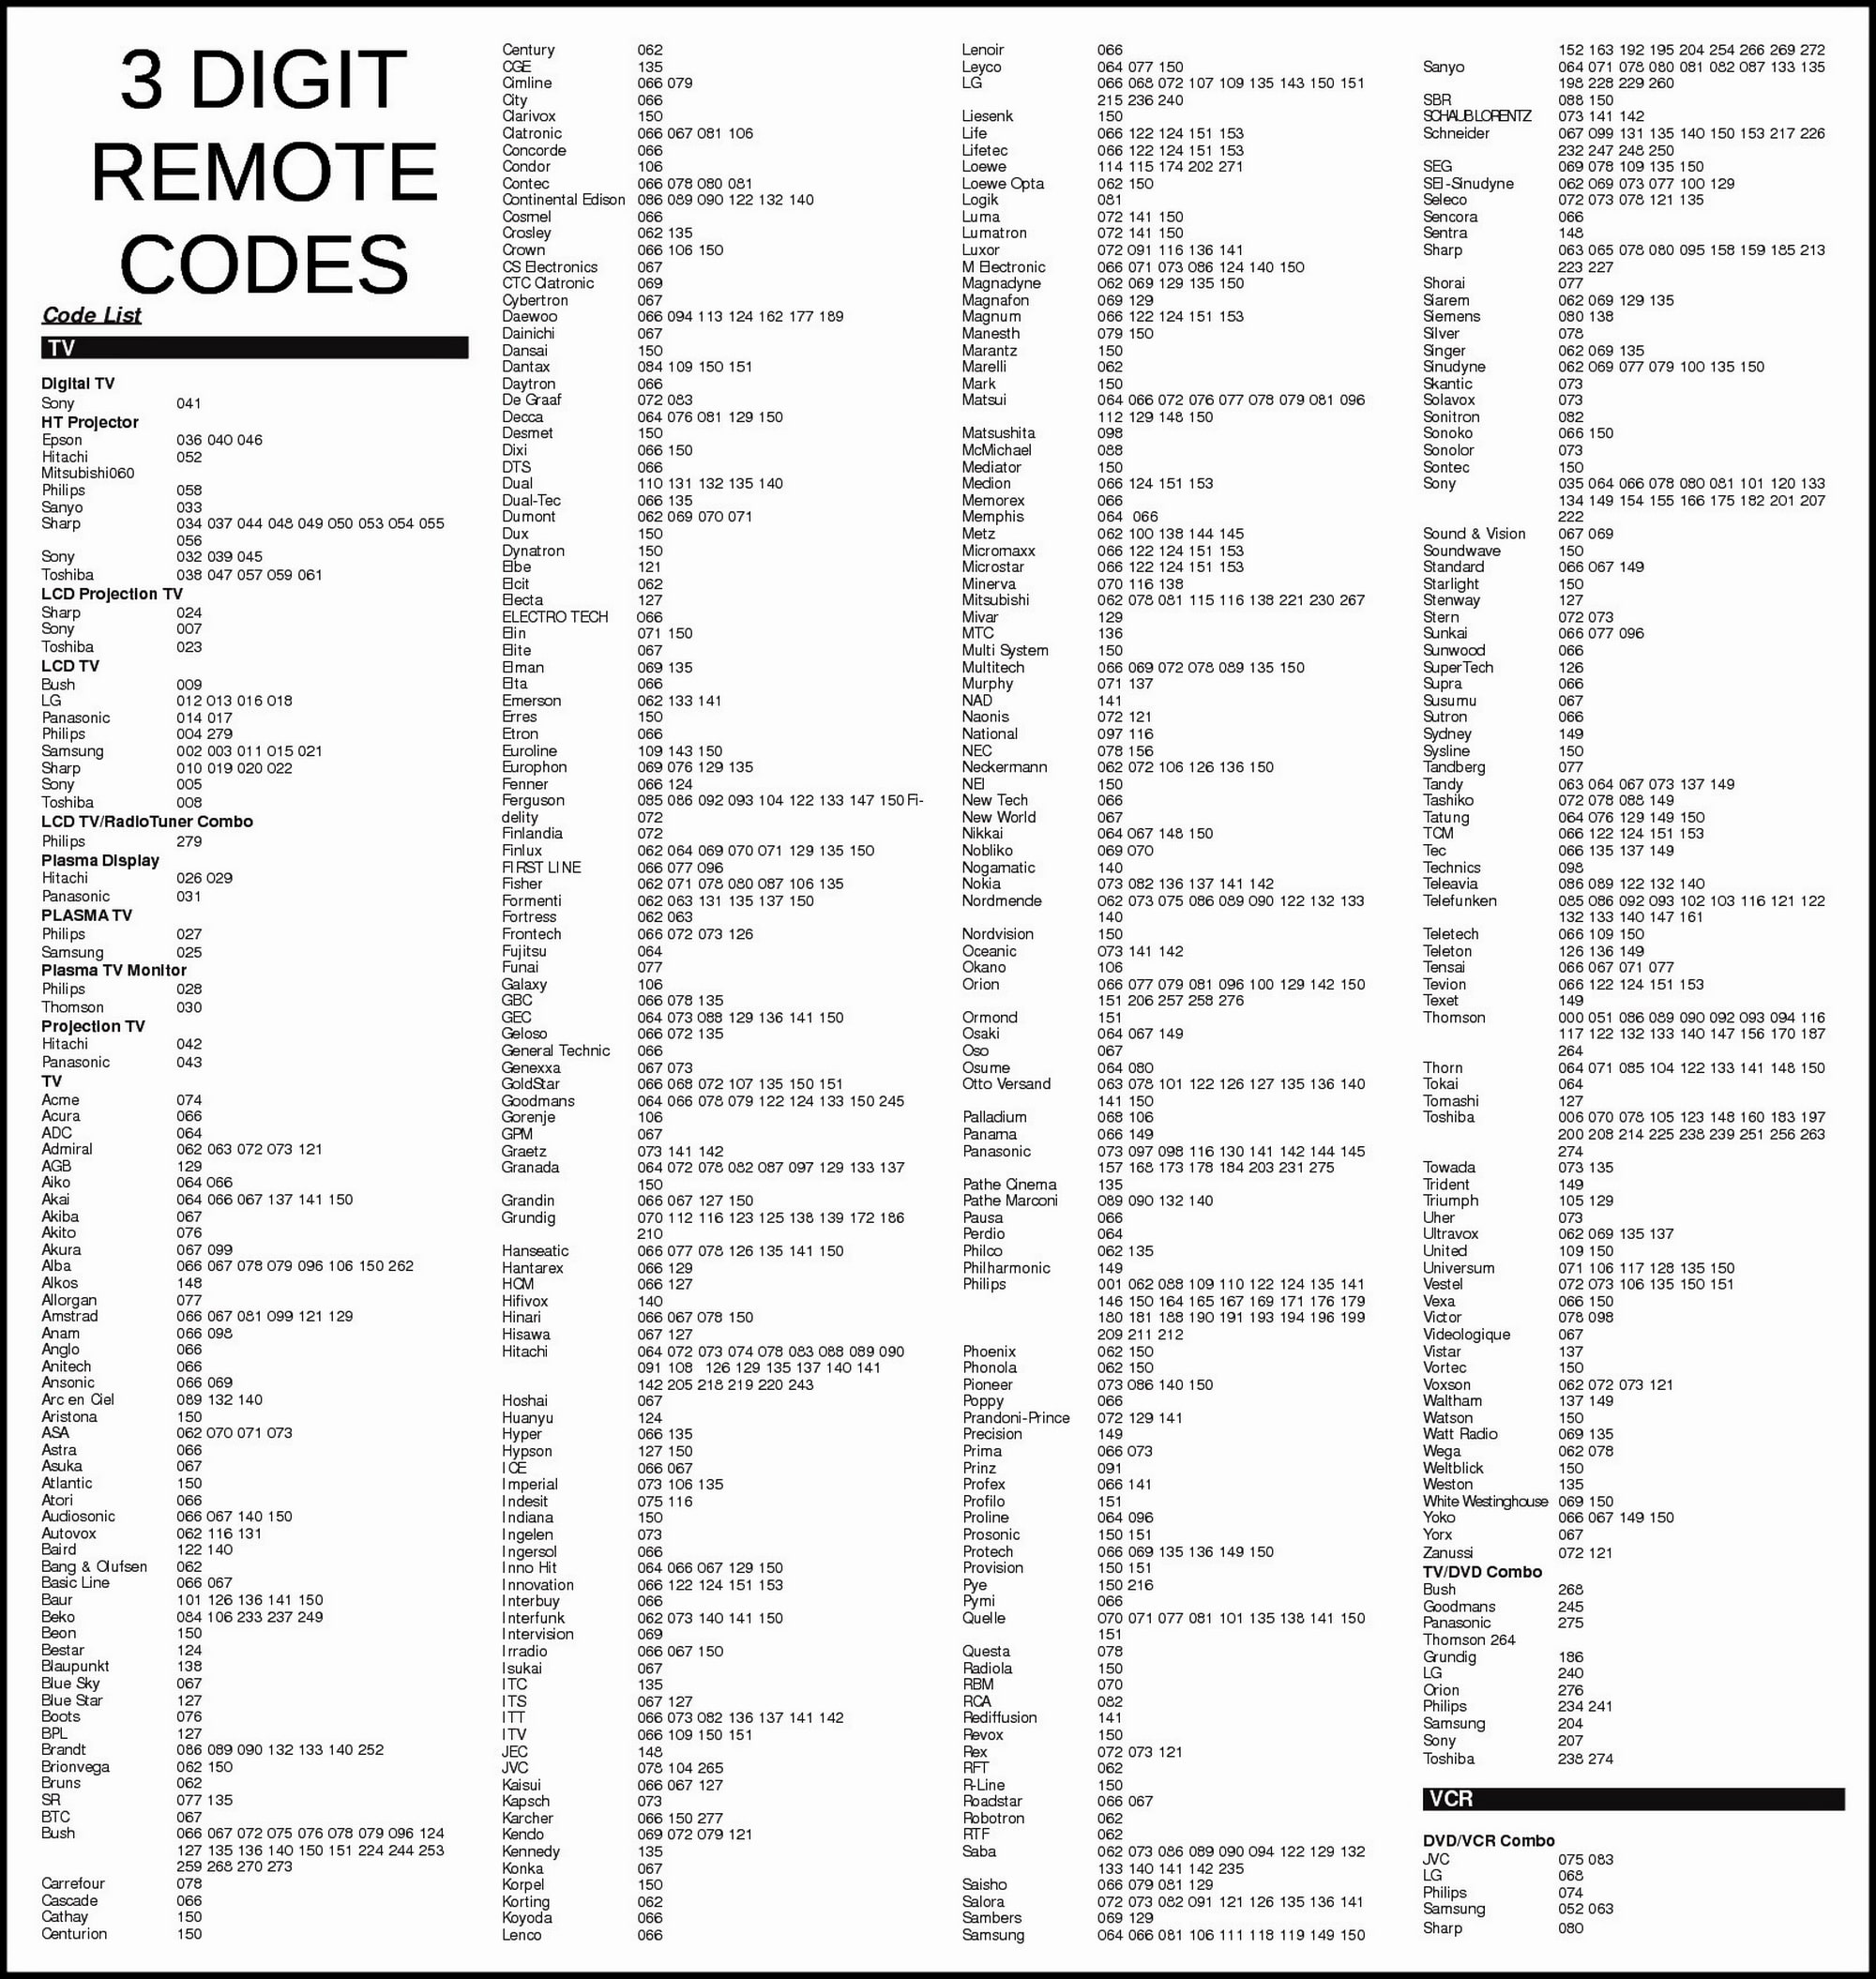 3 Digit Universal Remote Codes For Tv Codes For Universal Remotes